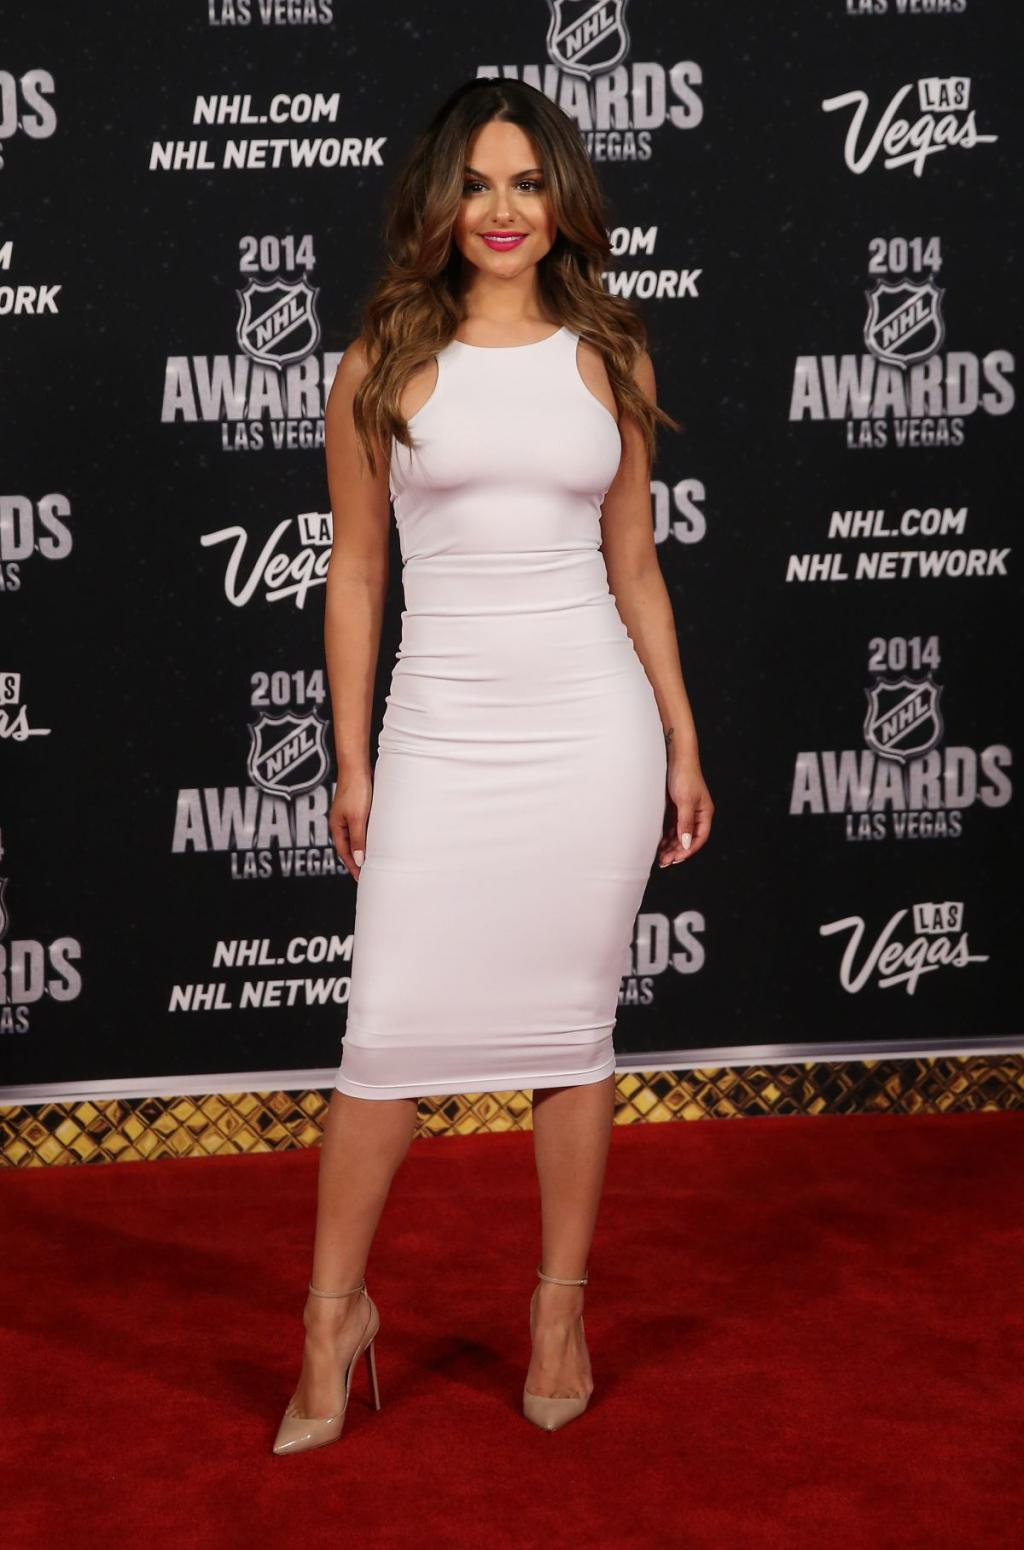 PIA TOSCANO At 2014 NHL Awards In Las Vegas - HawtCelebs - HawtCelebs